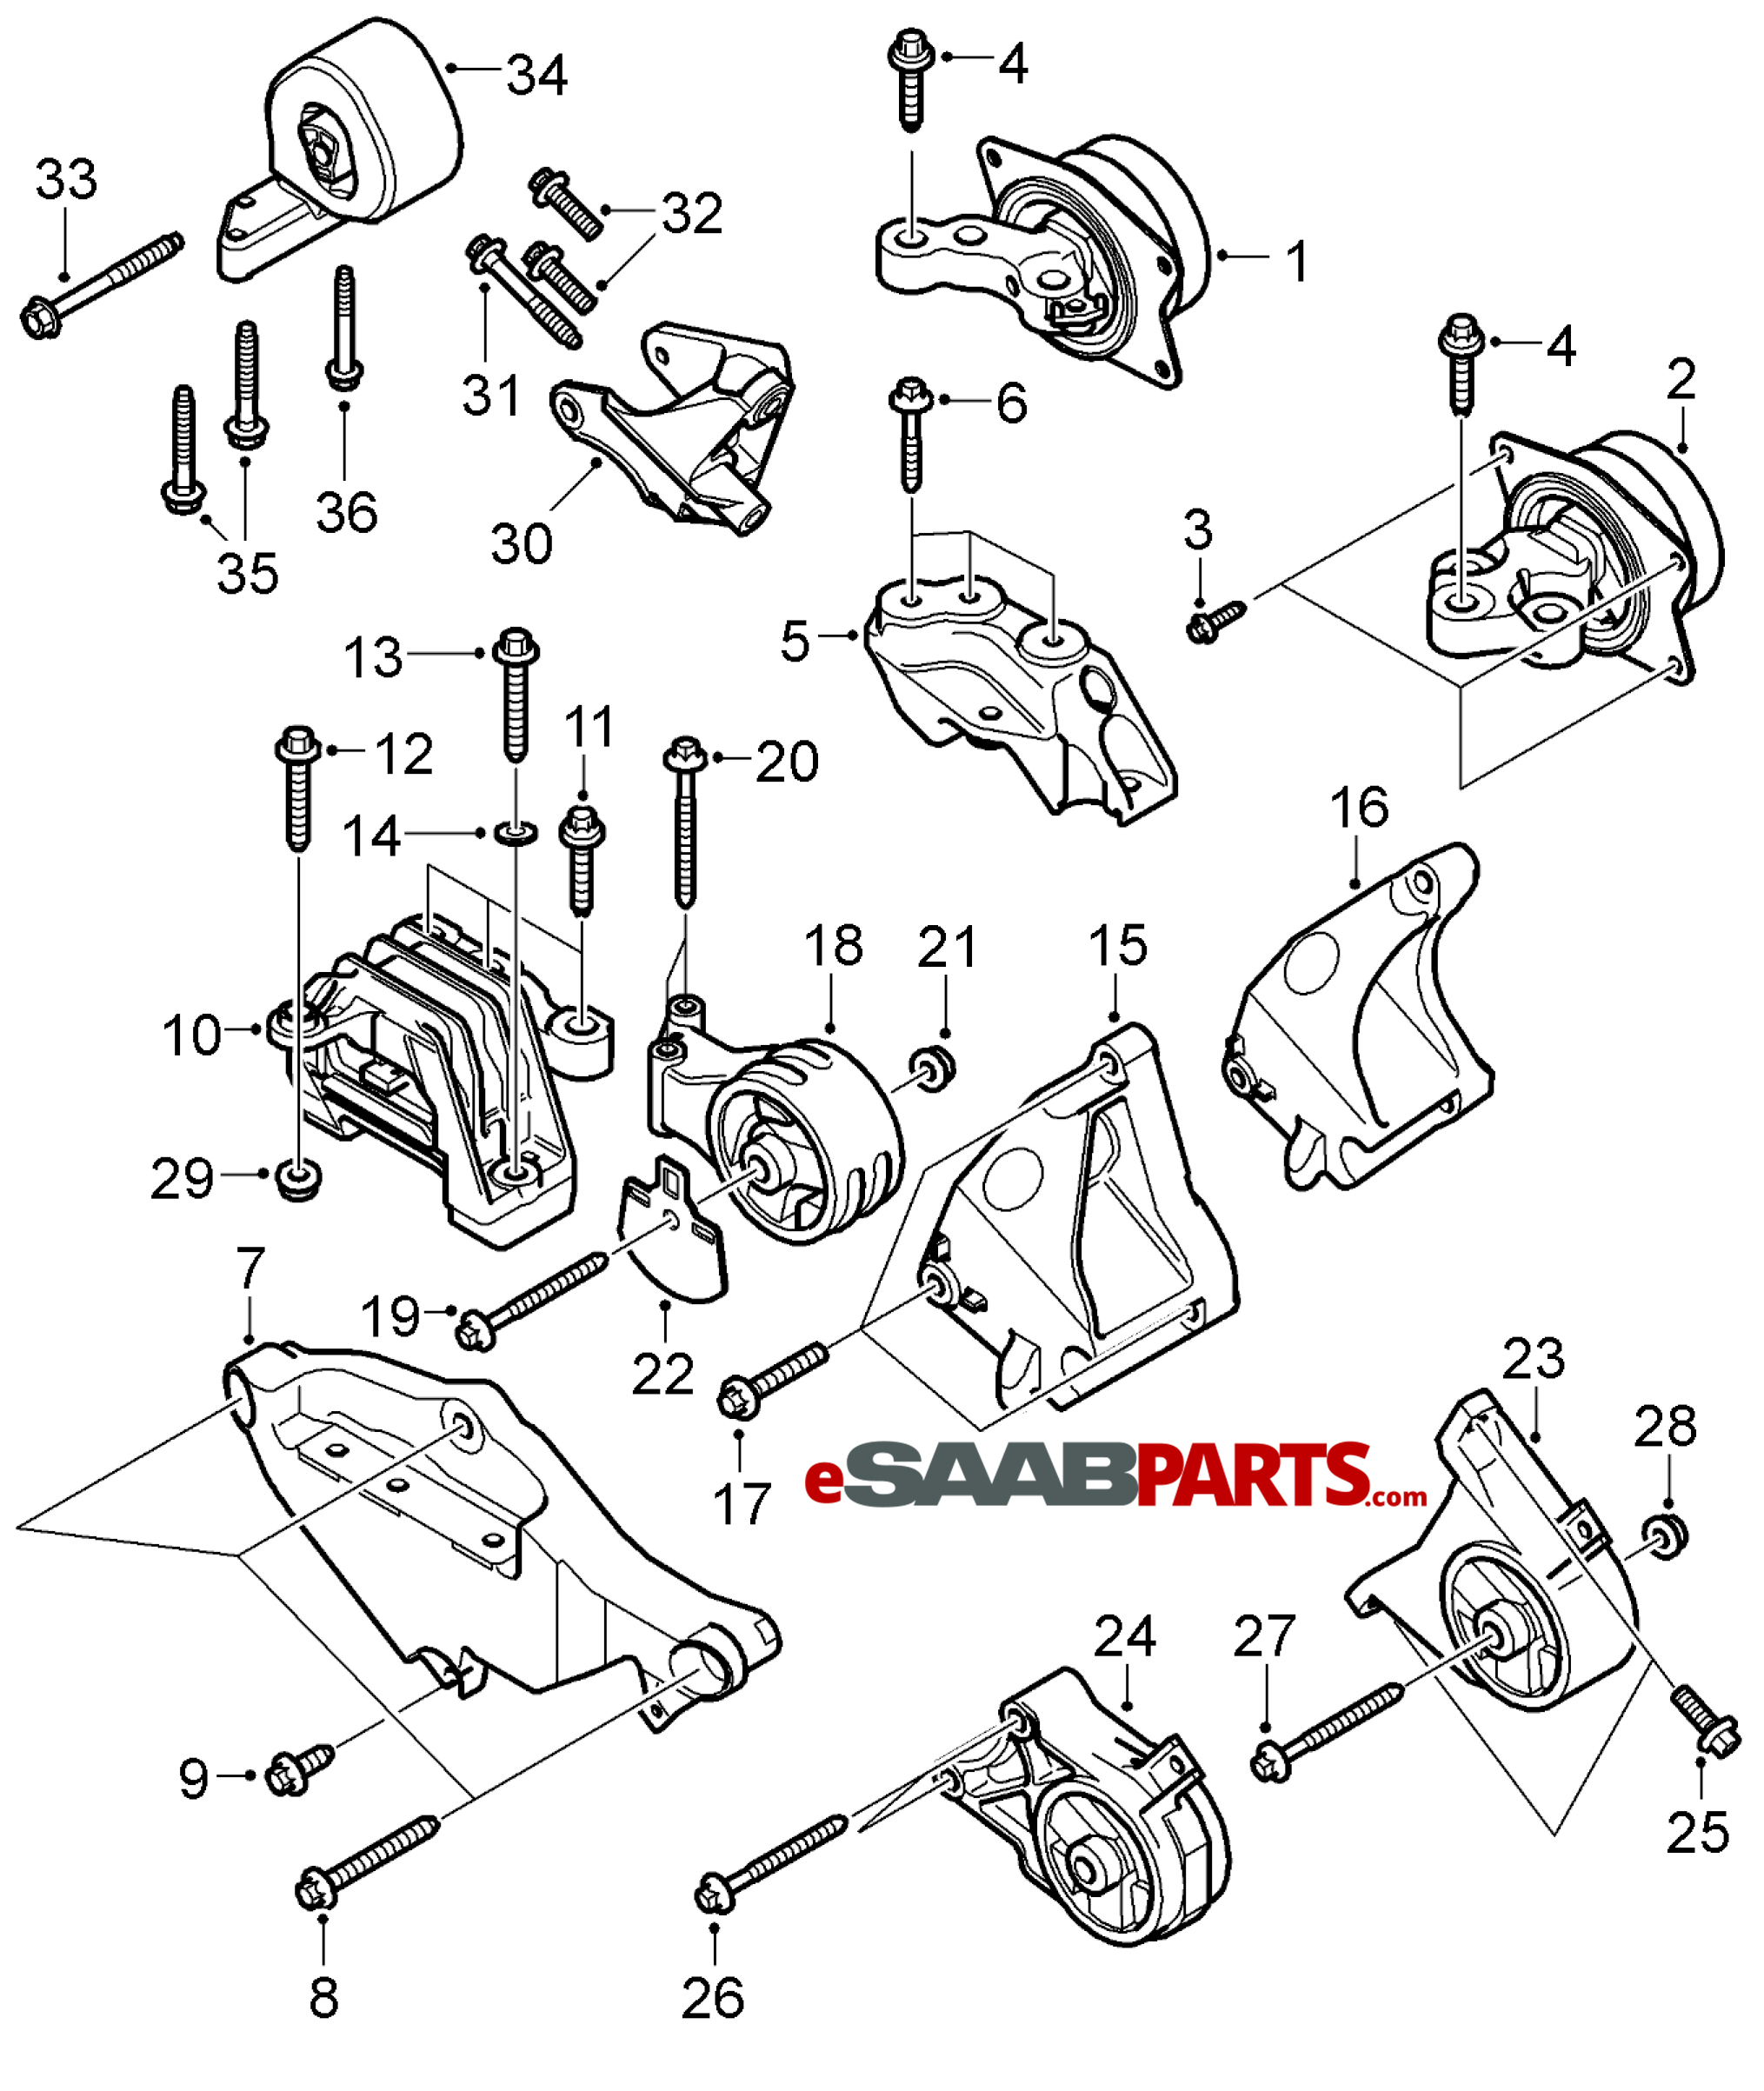 Astounding 12777976 Saab Engine Mount Attachment Bracket Lh W Xwd For 9 3 V6 Wiring 101 Akebwellnesstrialsorg